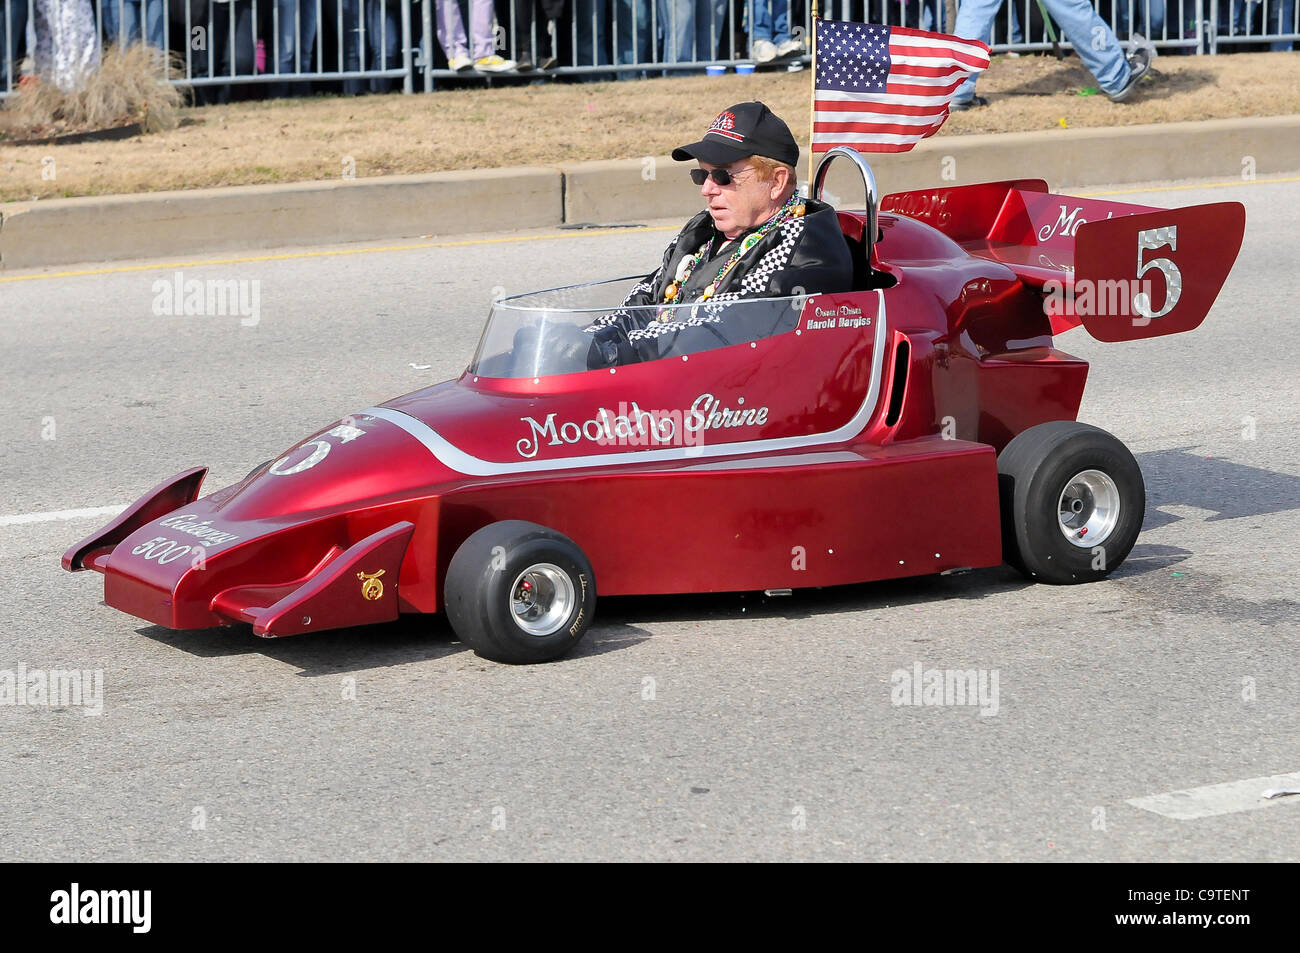 Feb. 18, 2012 - Saint Louis, Missouri, U.S - A member of the Moolah Shriners drives one of the Shriner's famous - Stock Image